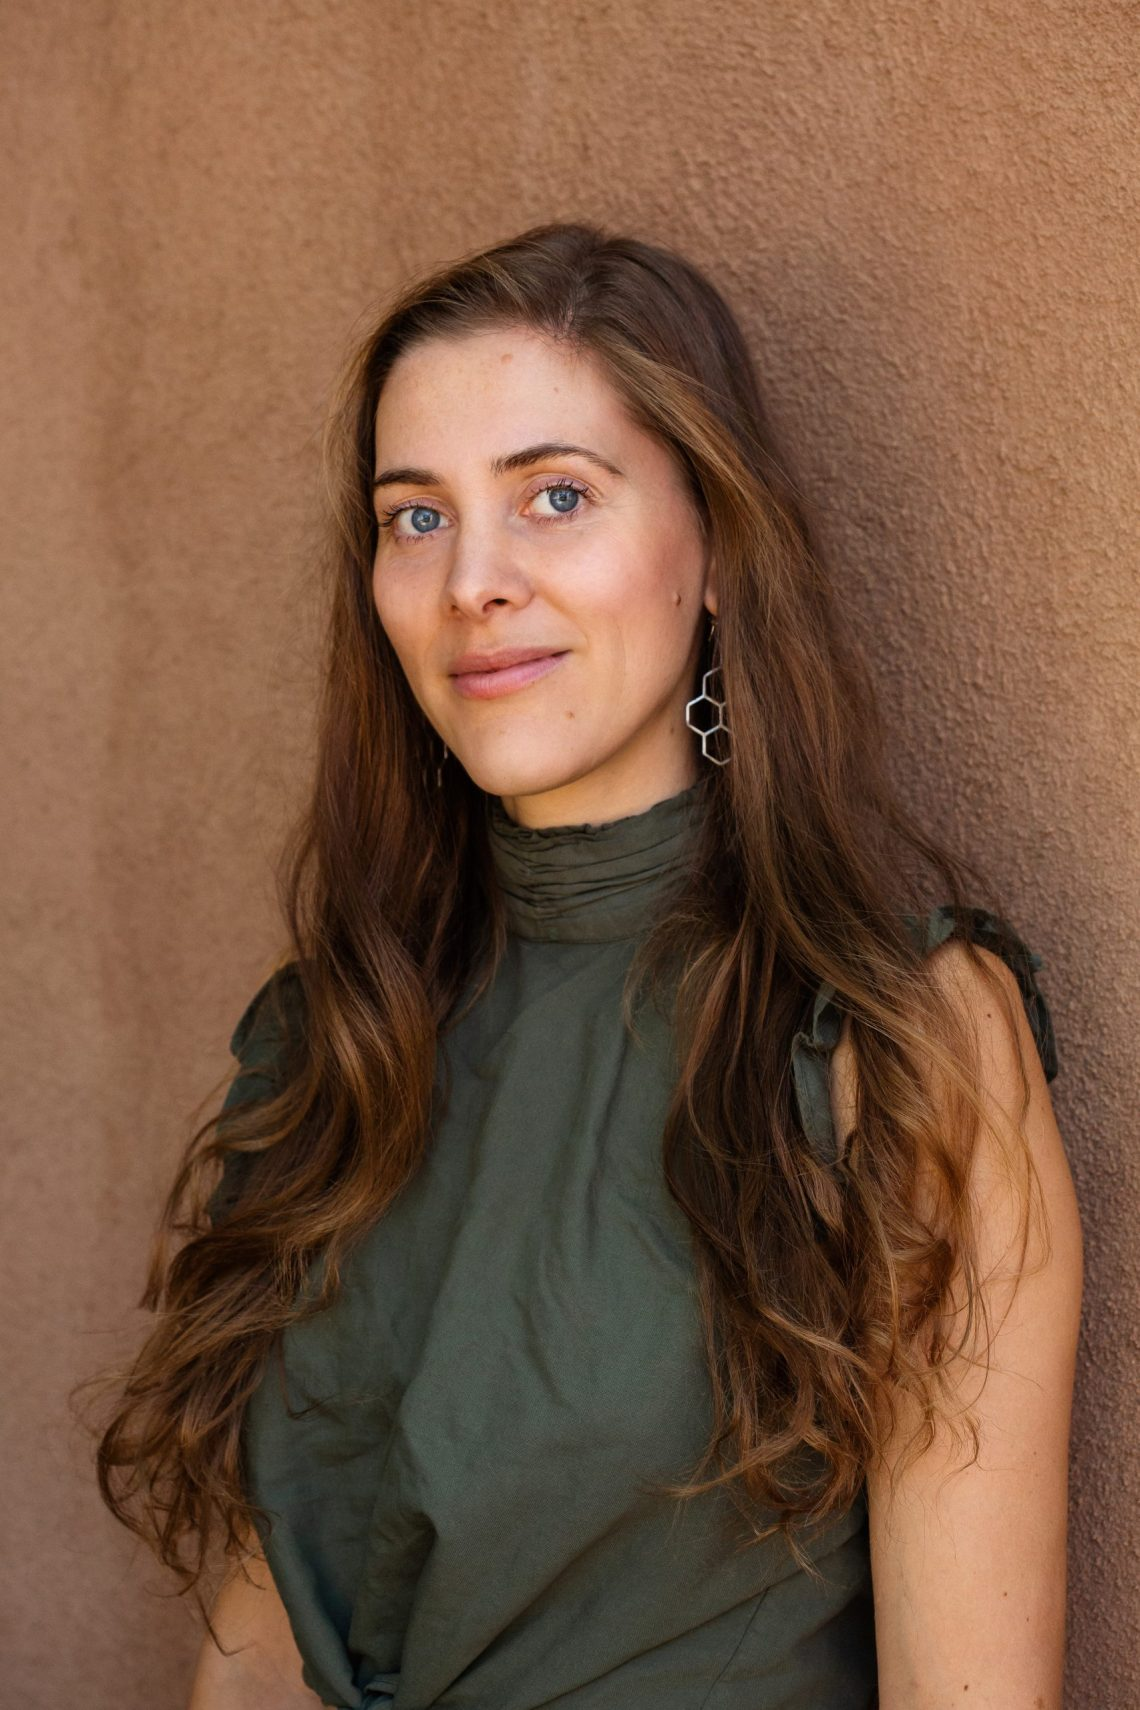 Neutral earth toned portrait photography by Oakland photographerEllaSophie. Portrait of Dr. Clara Wetmore in Taos NM wearing green shirt in front of brown adobe style wall.